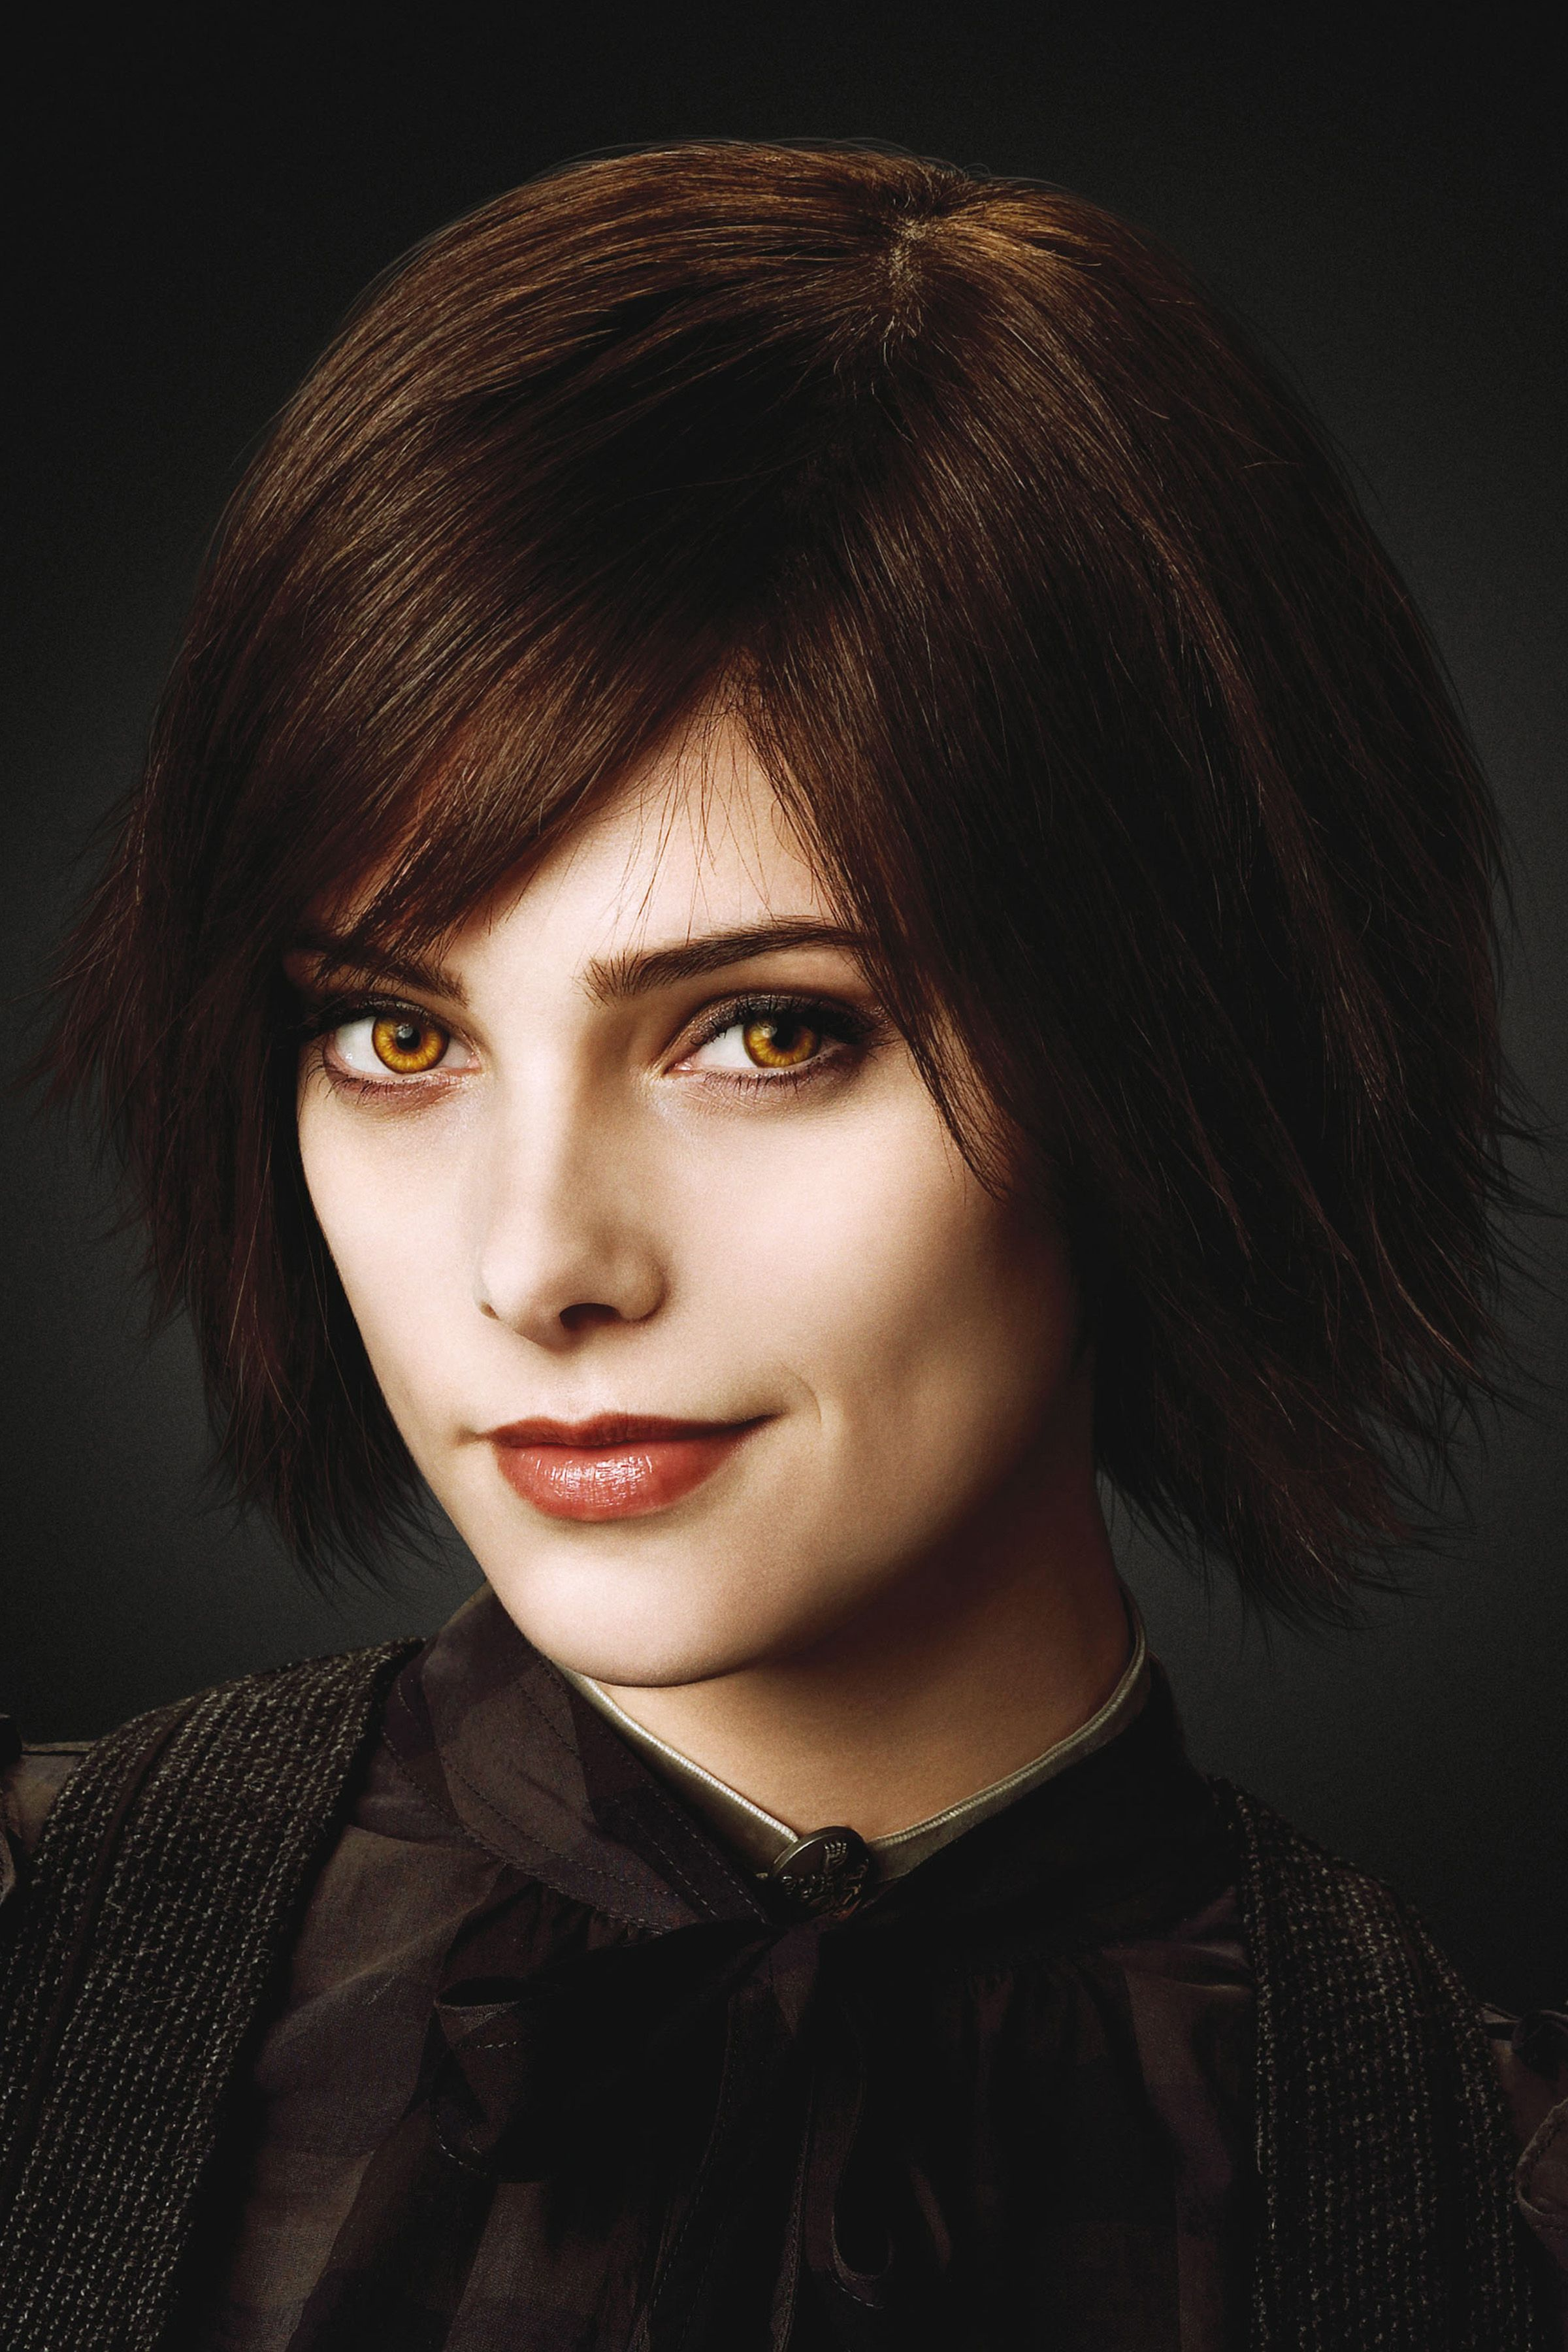 this is ashley greene the actress who plays alice cullen in the